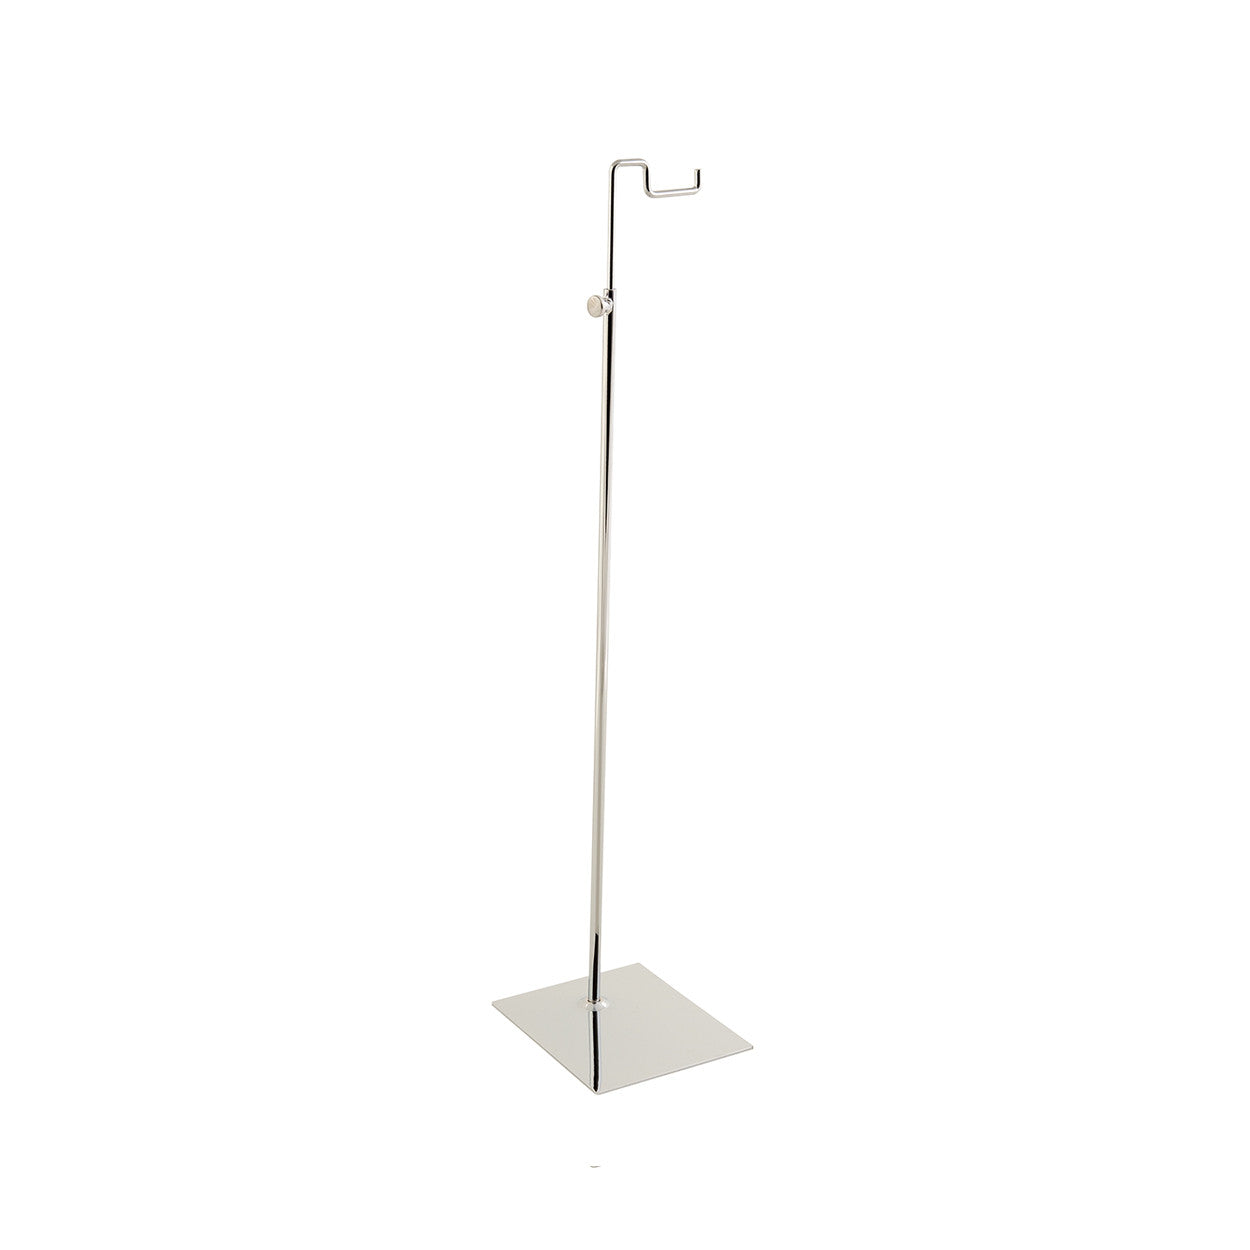 Budget handbag display stand large with solid base  150x120 base,510-770 mm Adj H